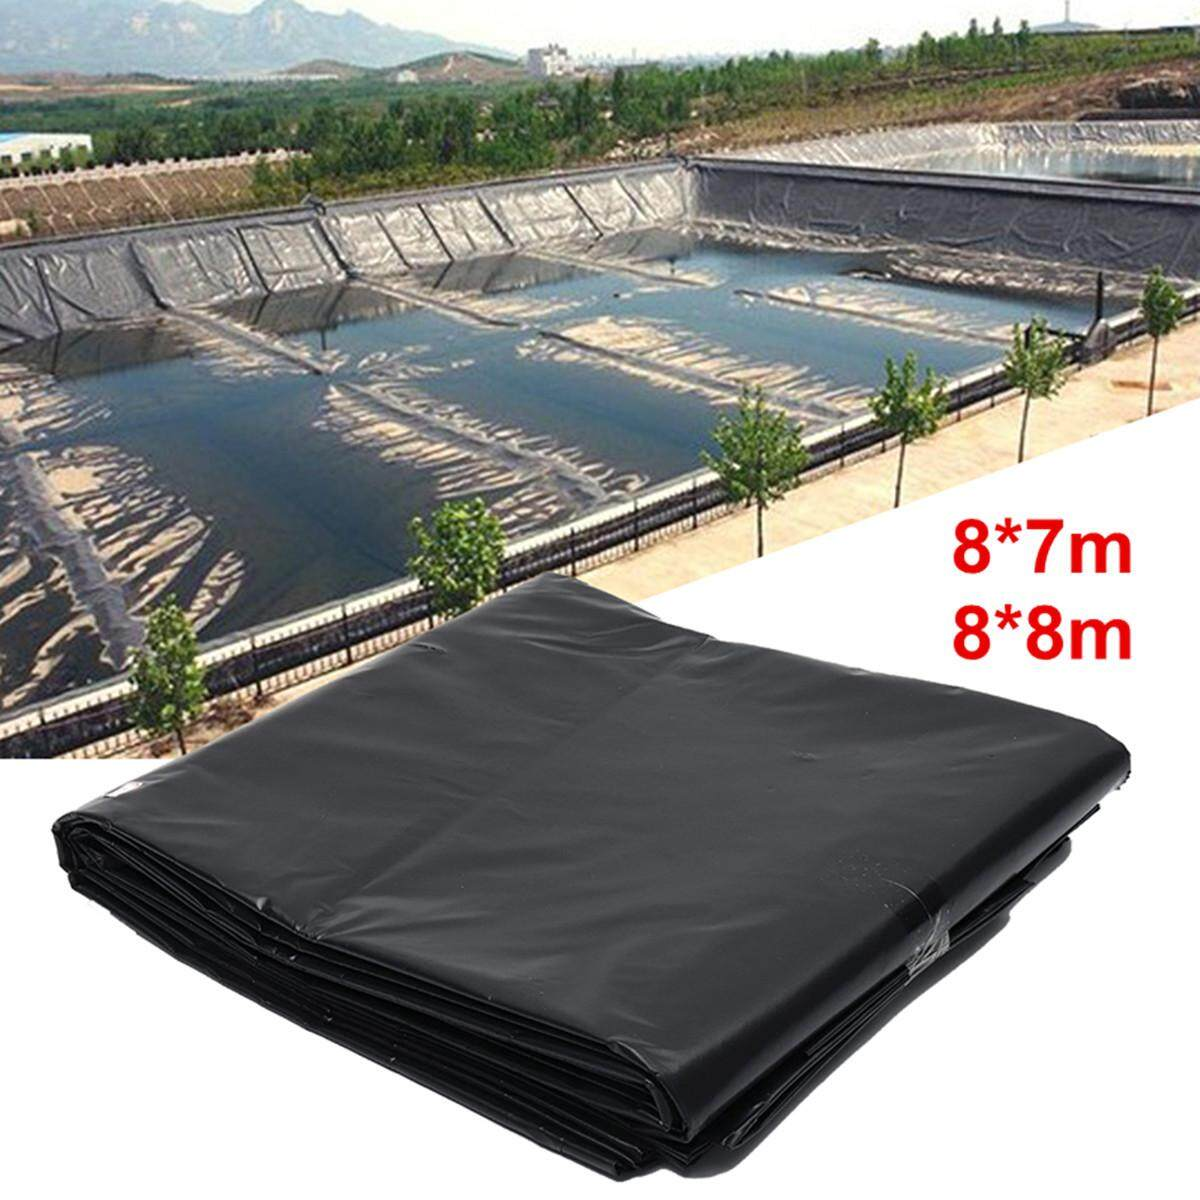 Pond Liners - Bestselling UK Pond Liner - Choose from 30 Bestselling Sizes # 8*7m